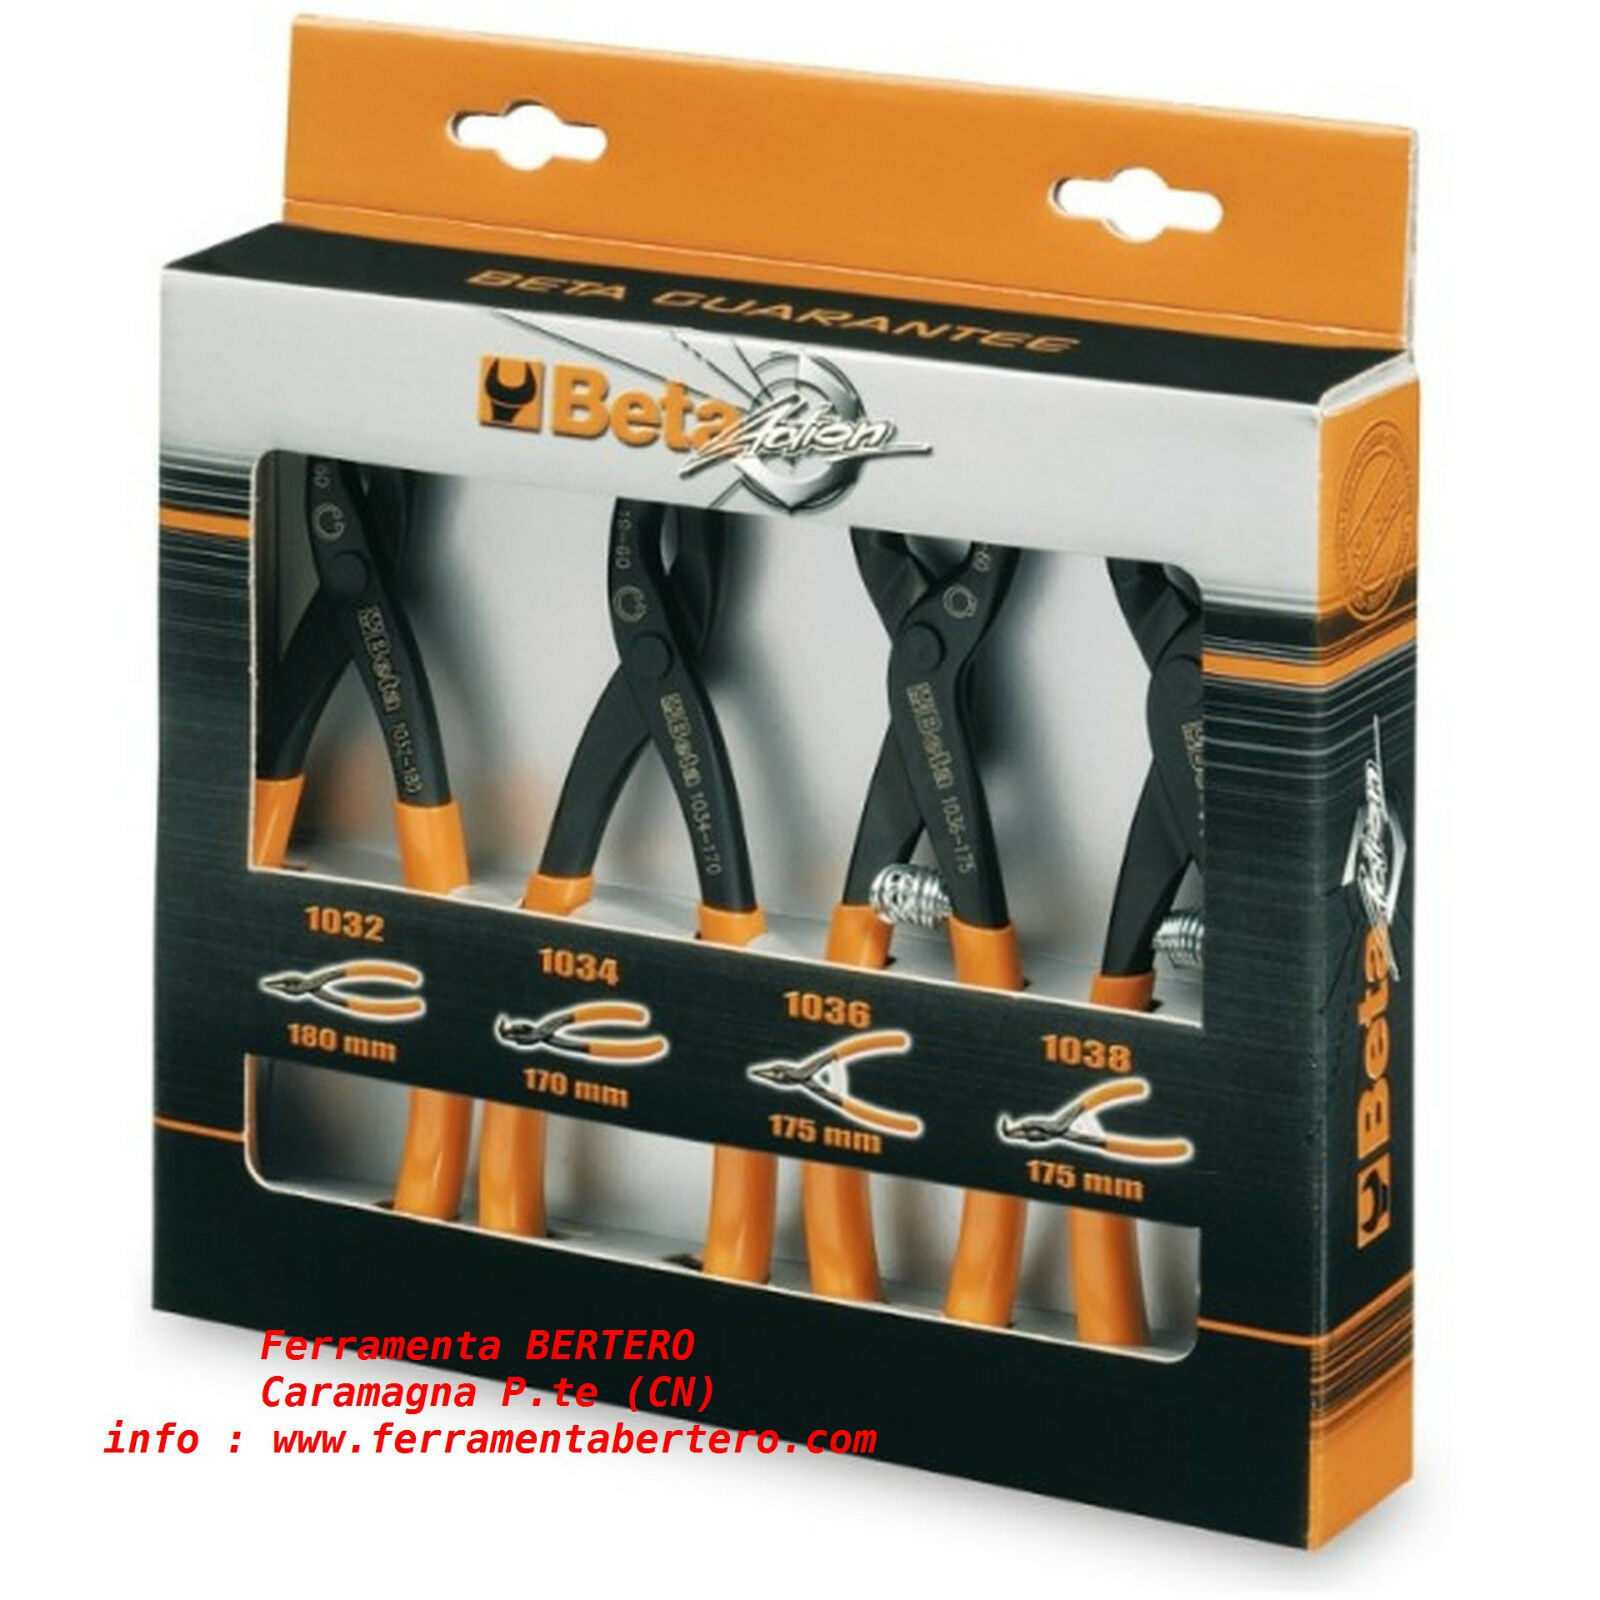 SET SERIE 4 PINZE SEEGER BETA TOOLS 1031/S4 ANELLI ELASTICI SICUREZZA